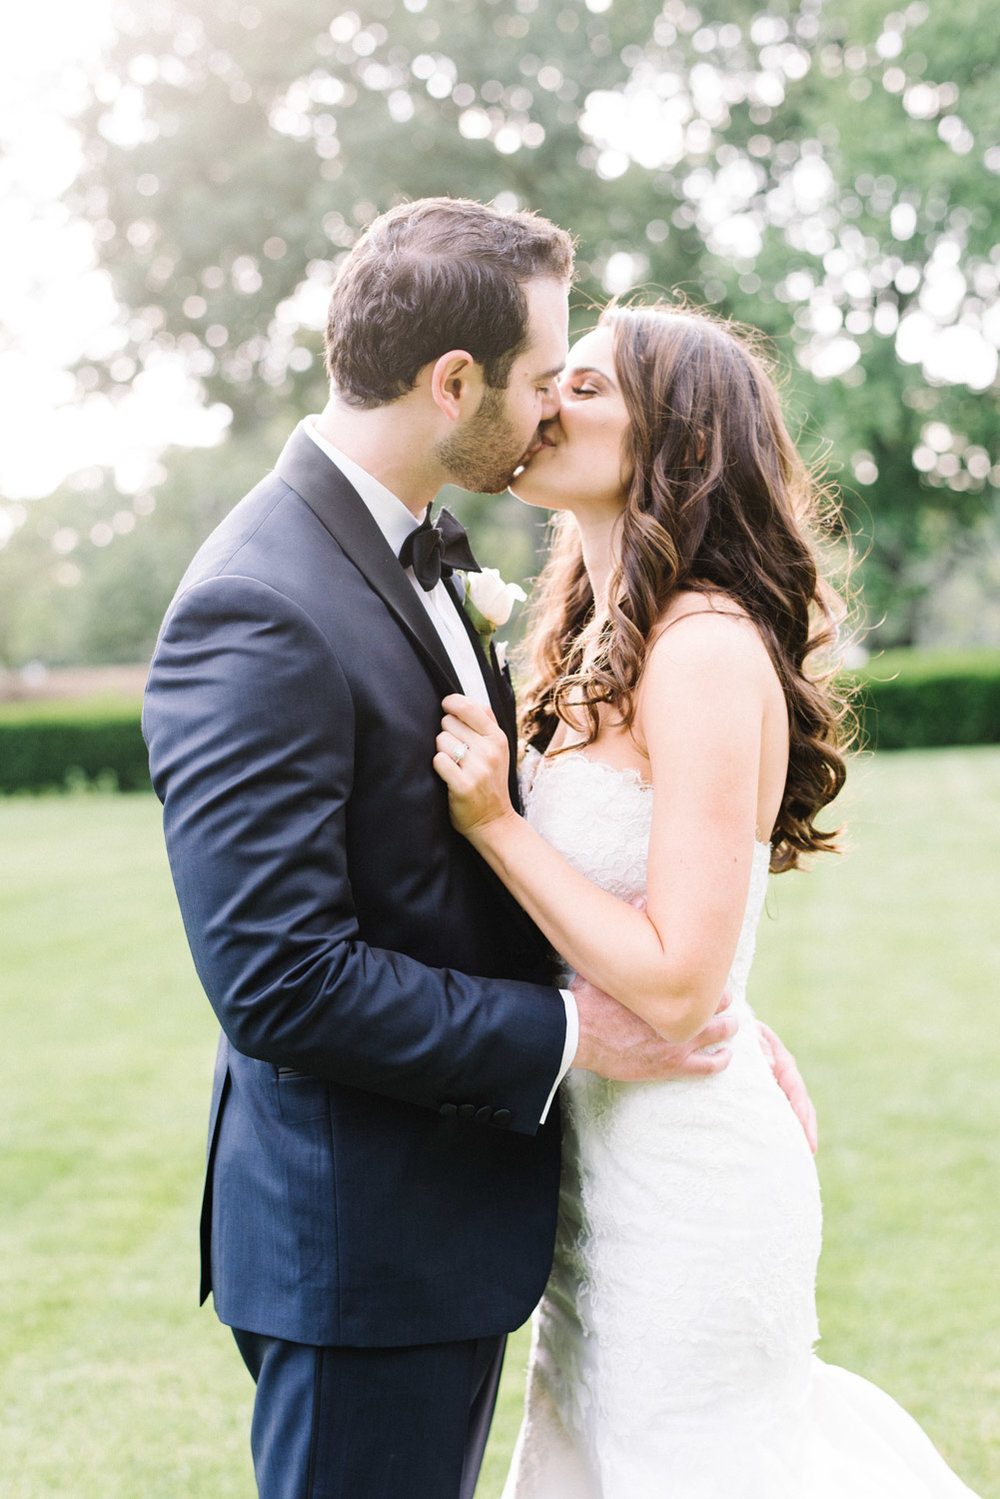 New York Wedding at The Carltun in Long Island